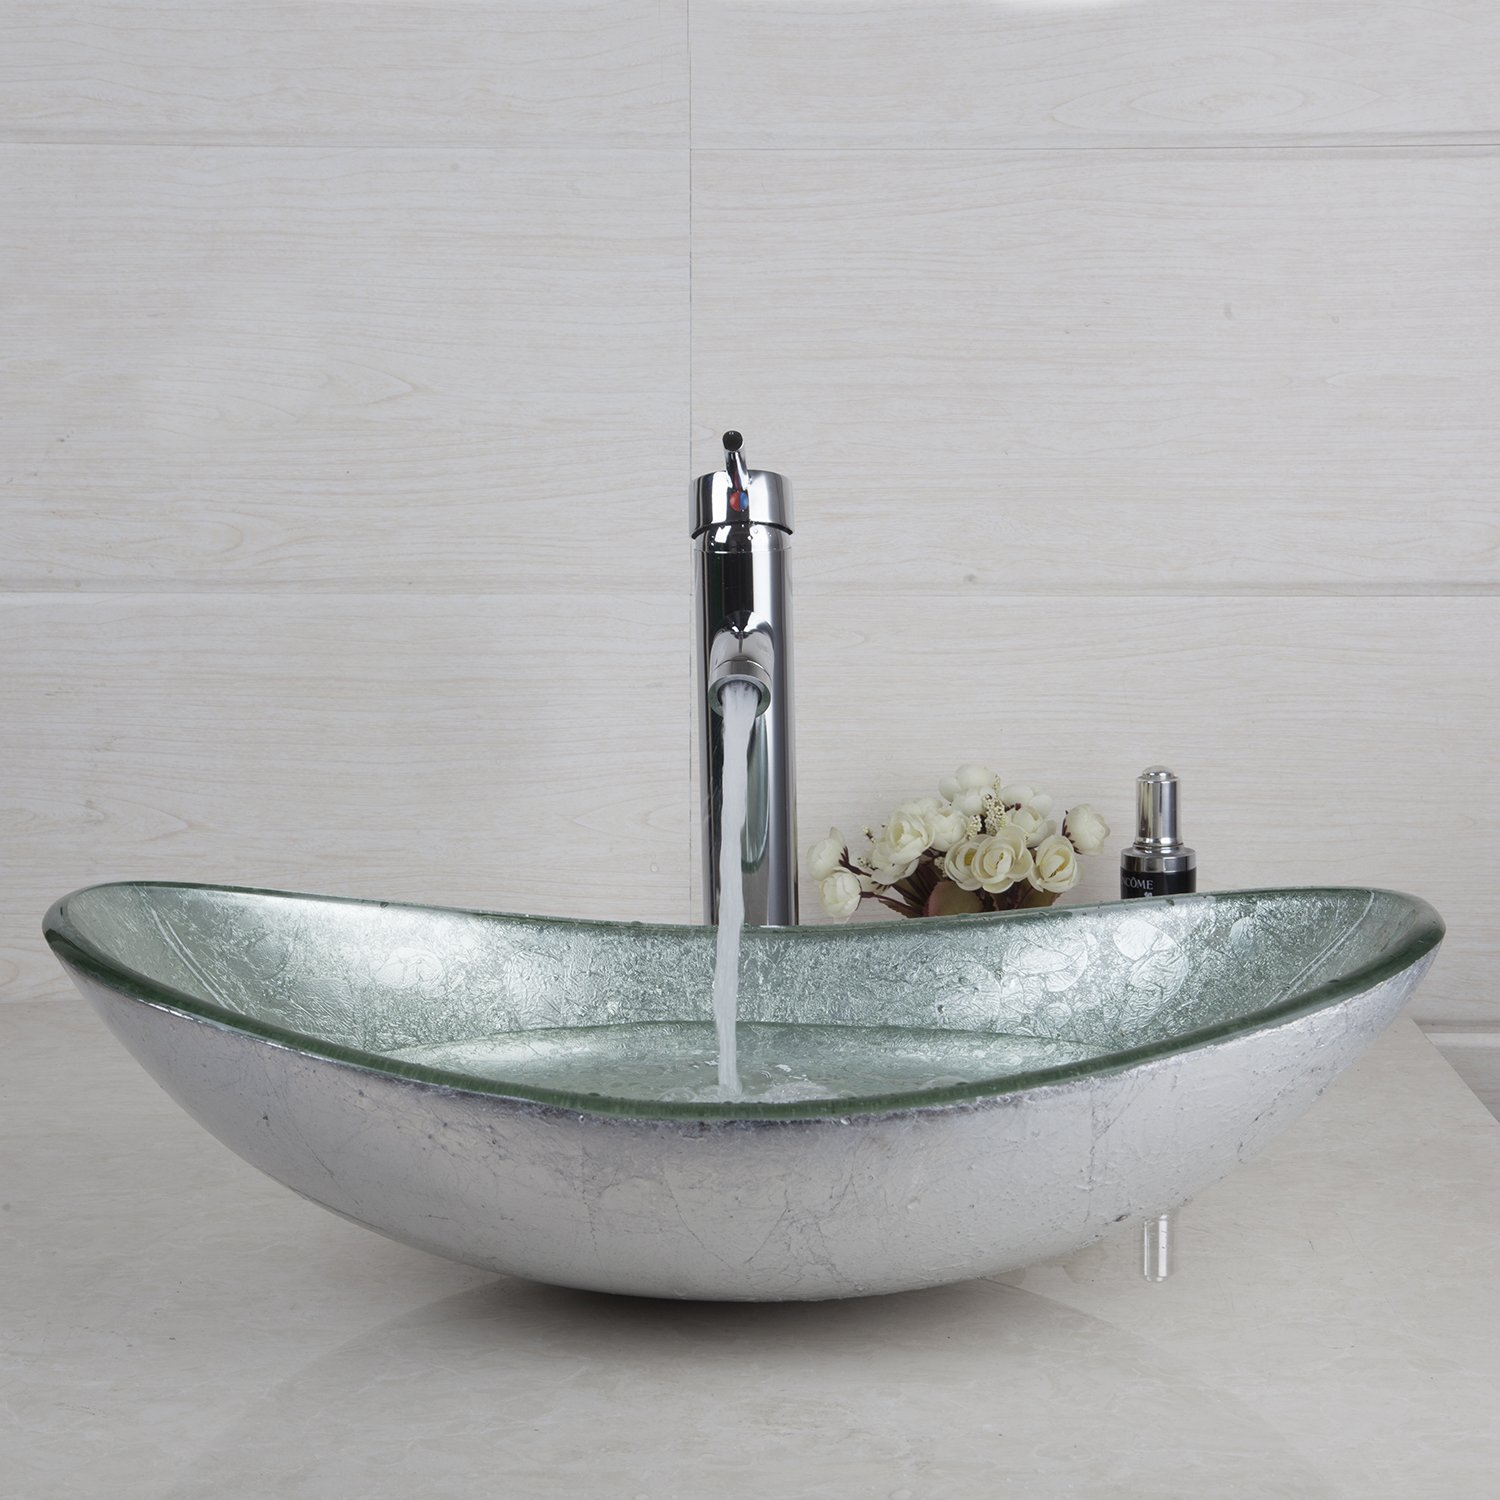 brief bathroom sink goods waterfall luxury color products led faucet chrome ls widespread changing